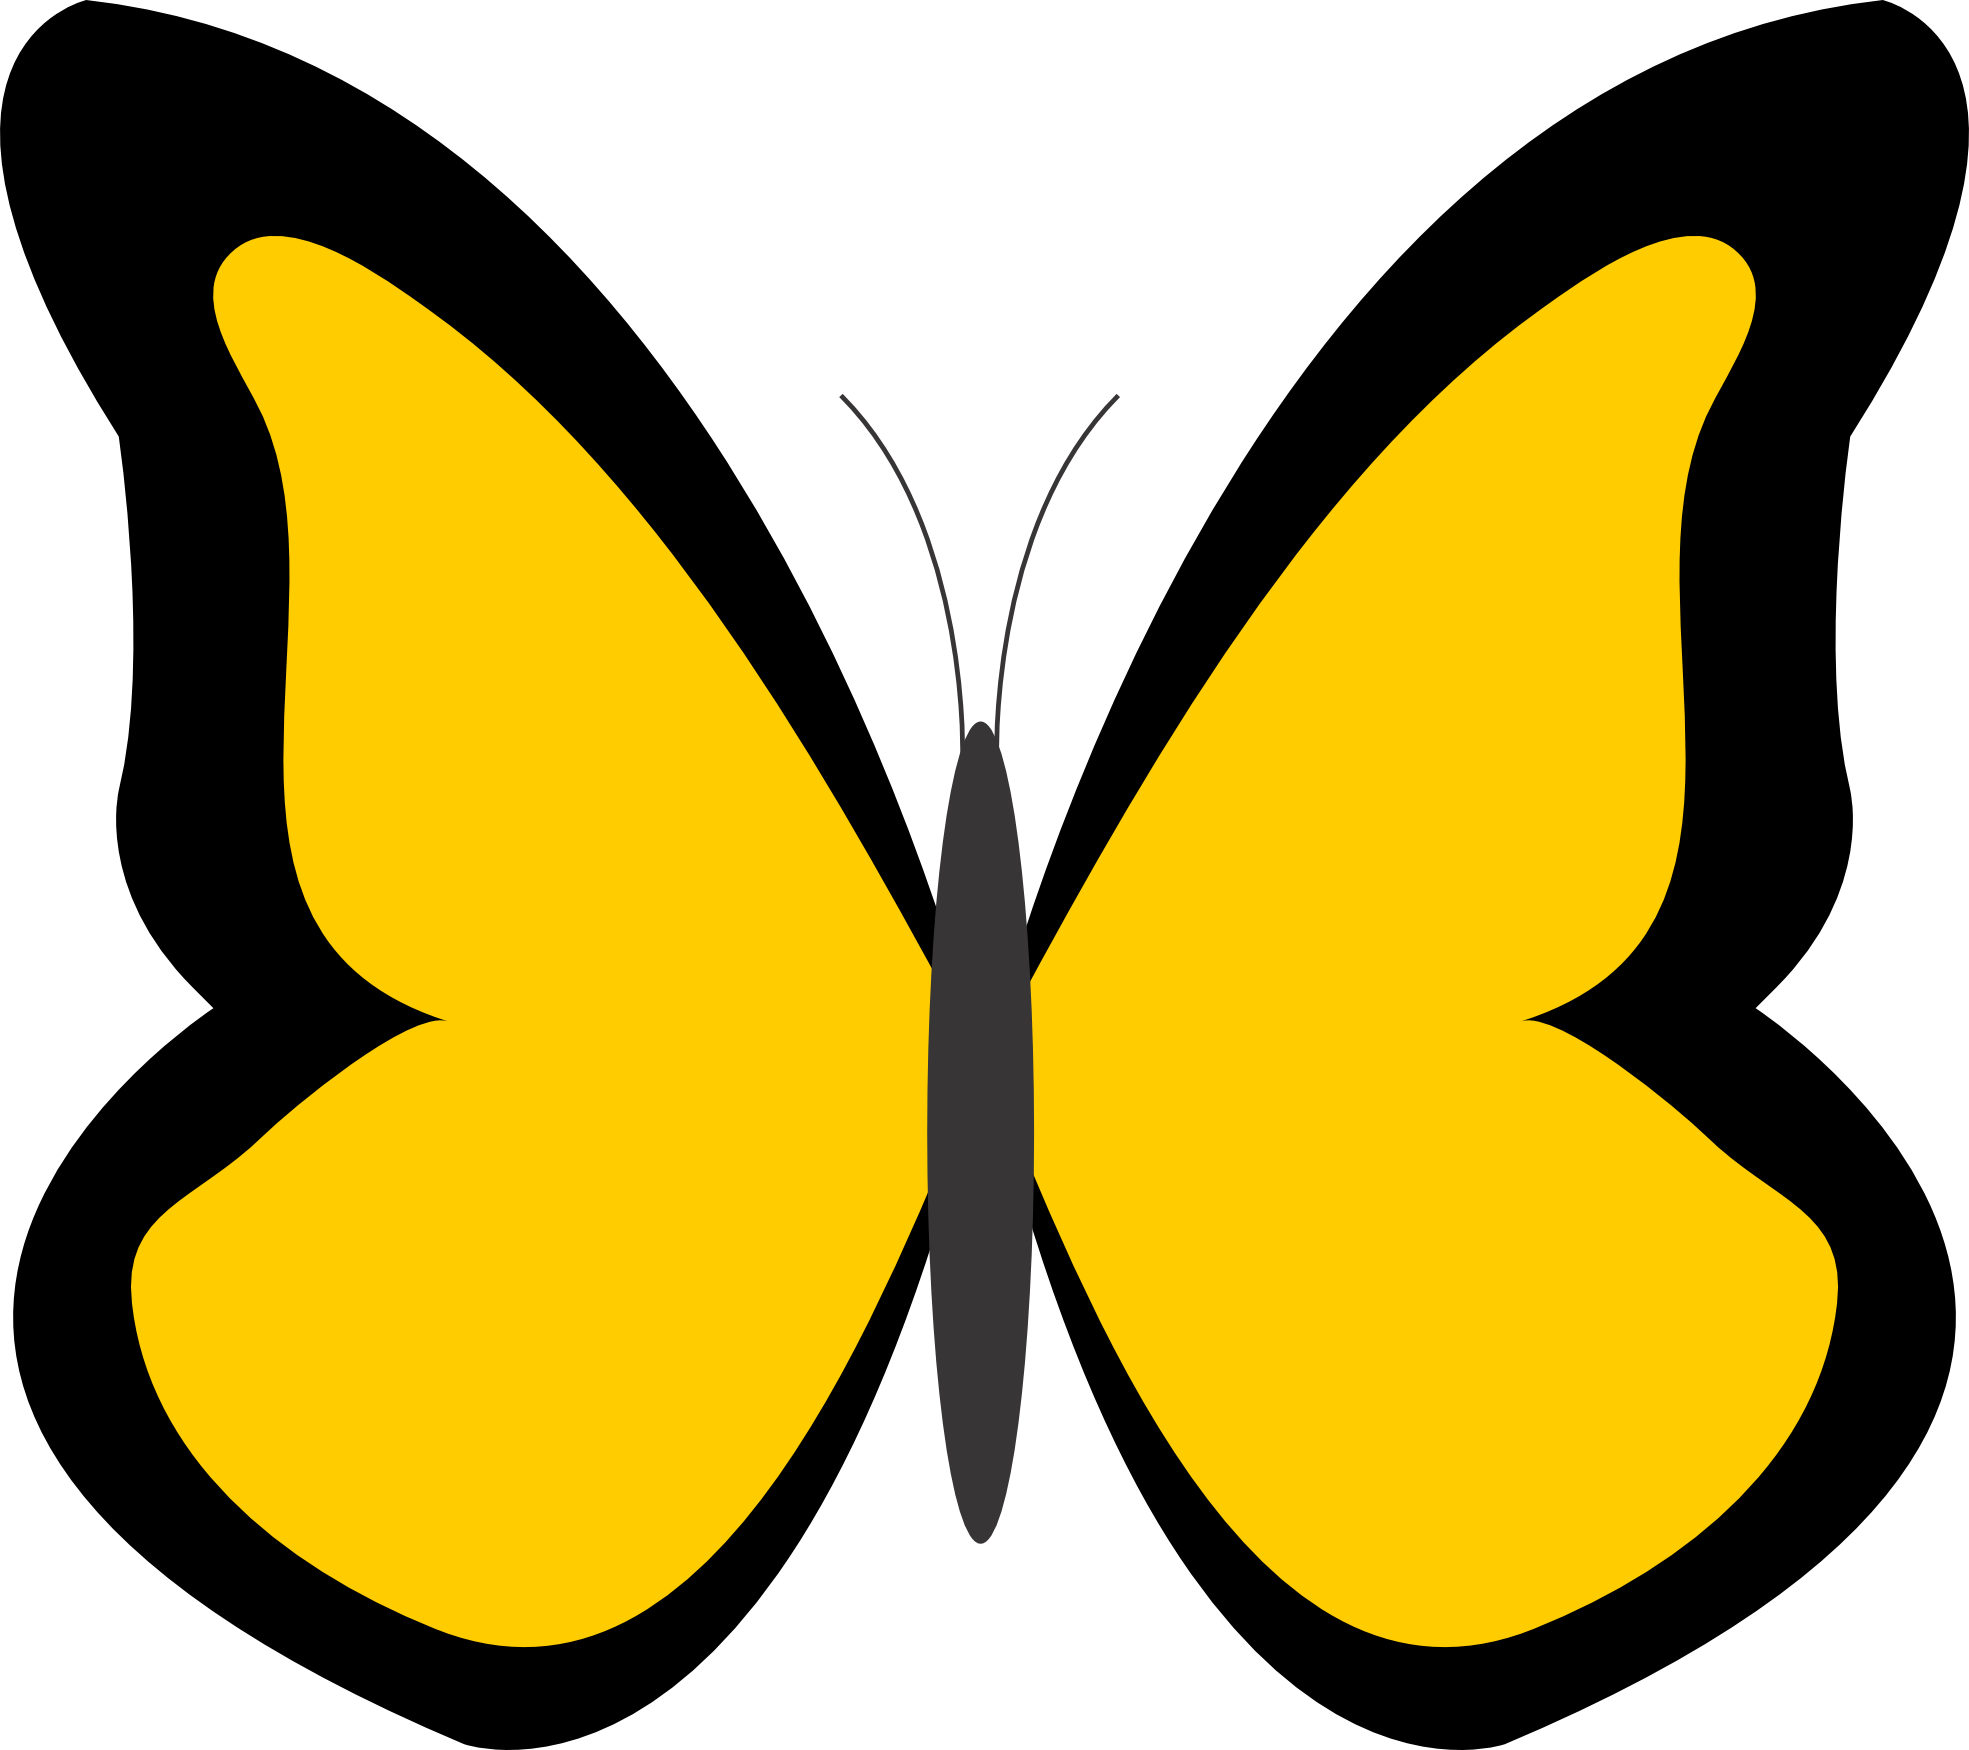 Criminal clipart culprit. Yellow butterfly panda free